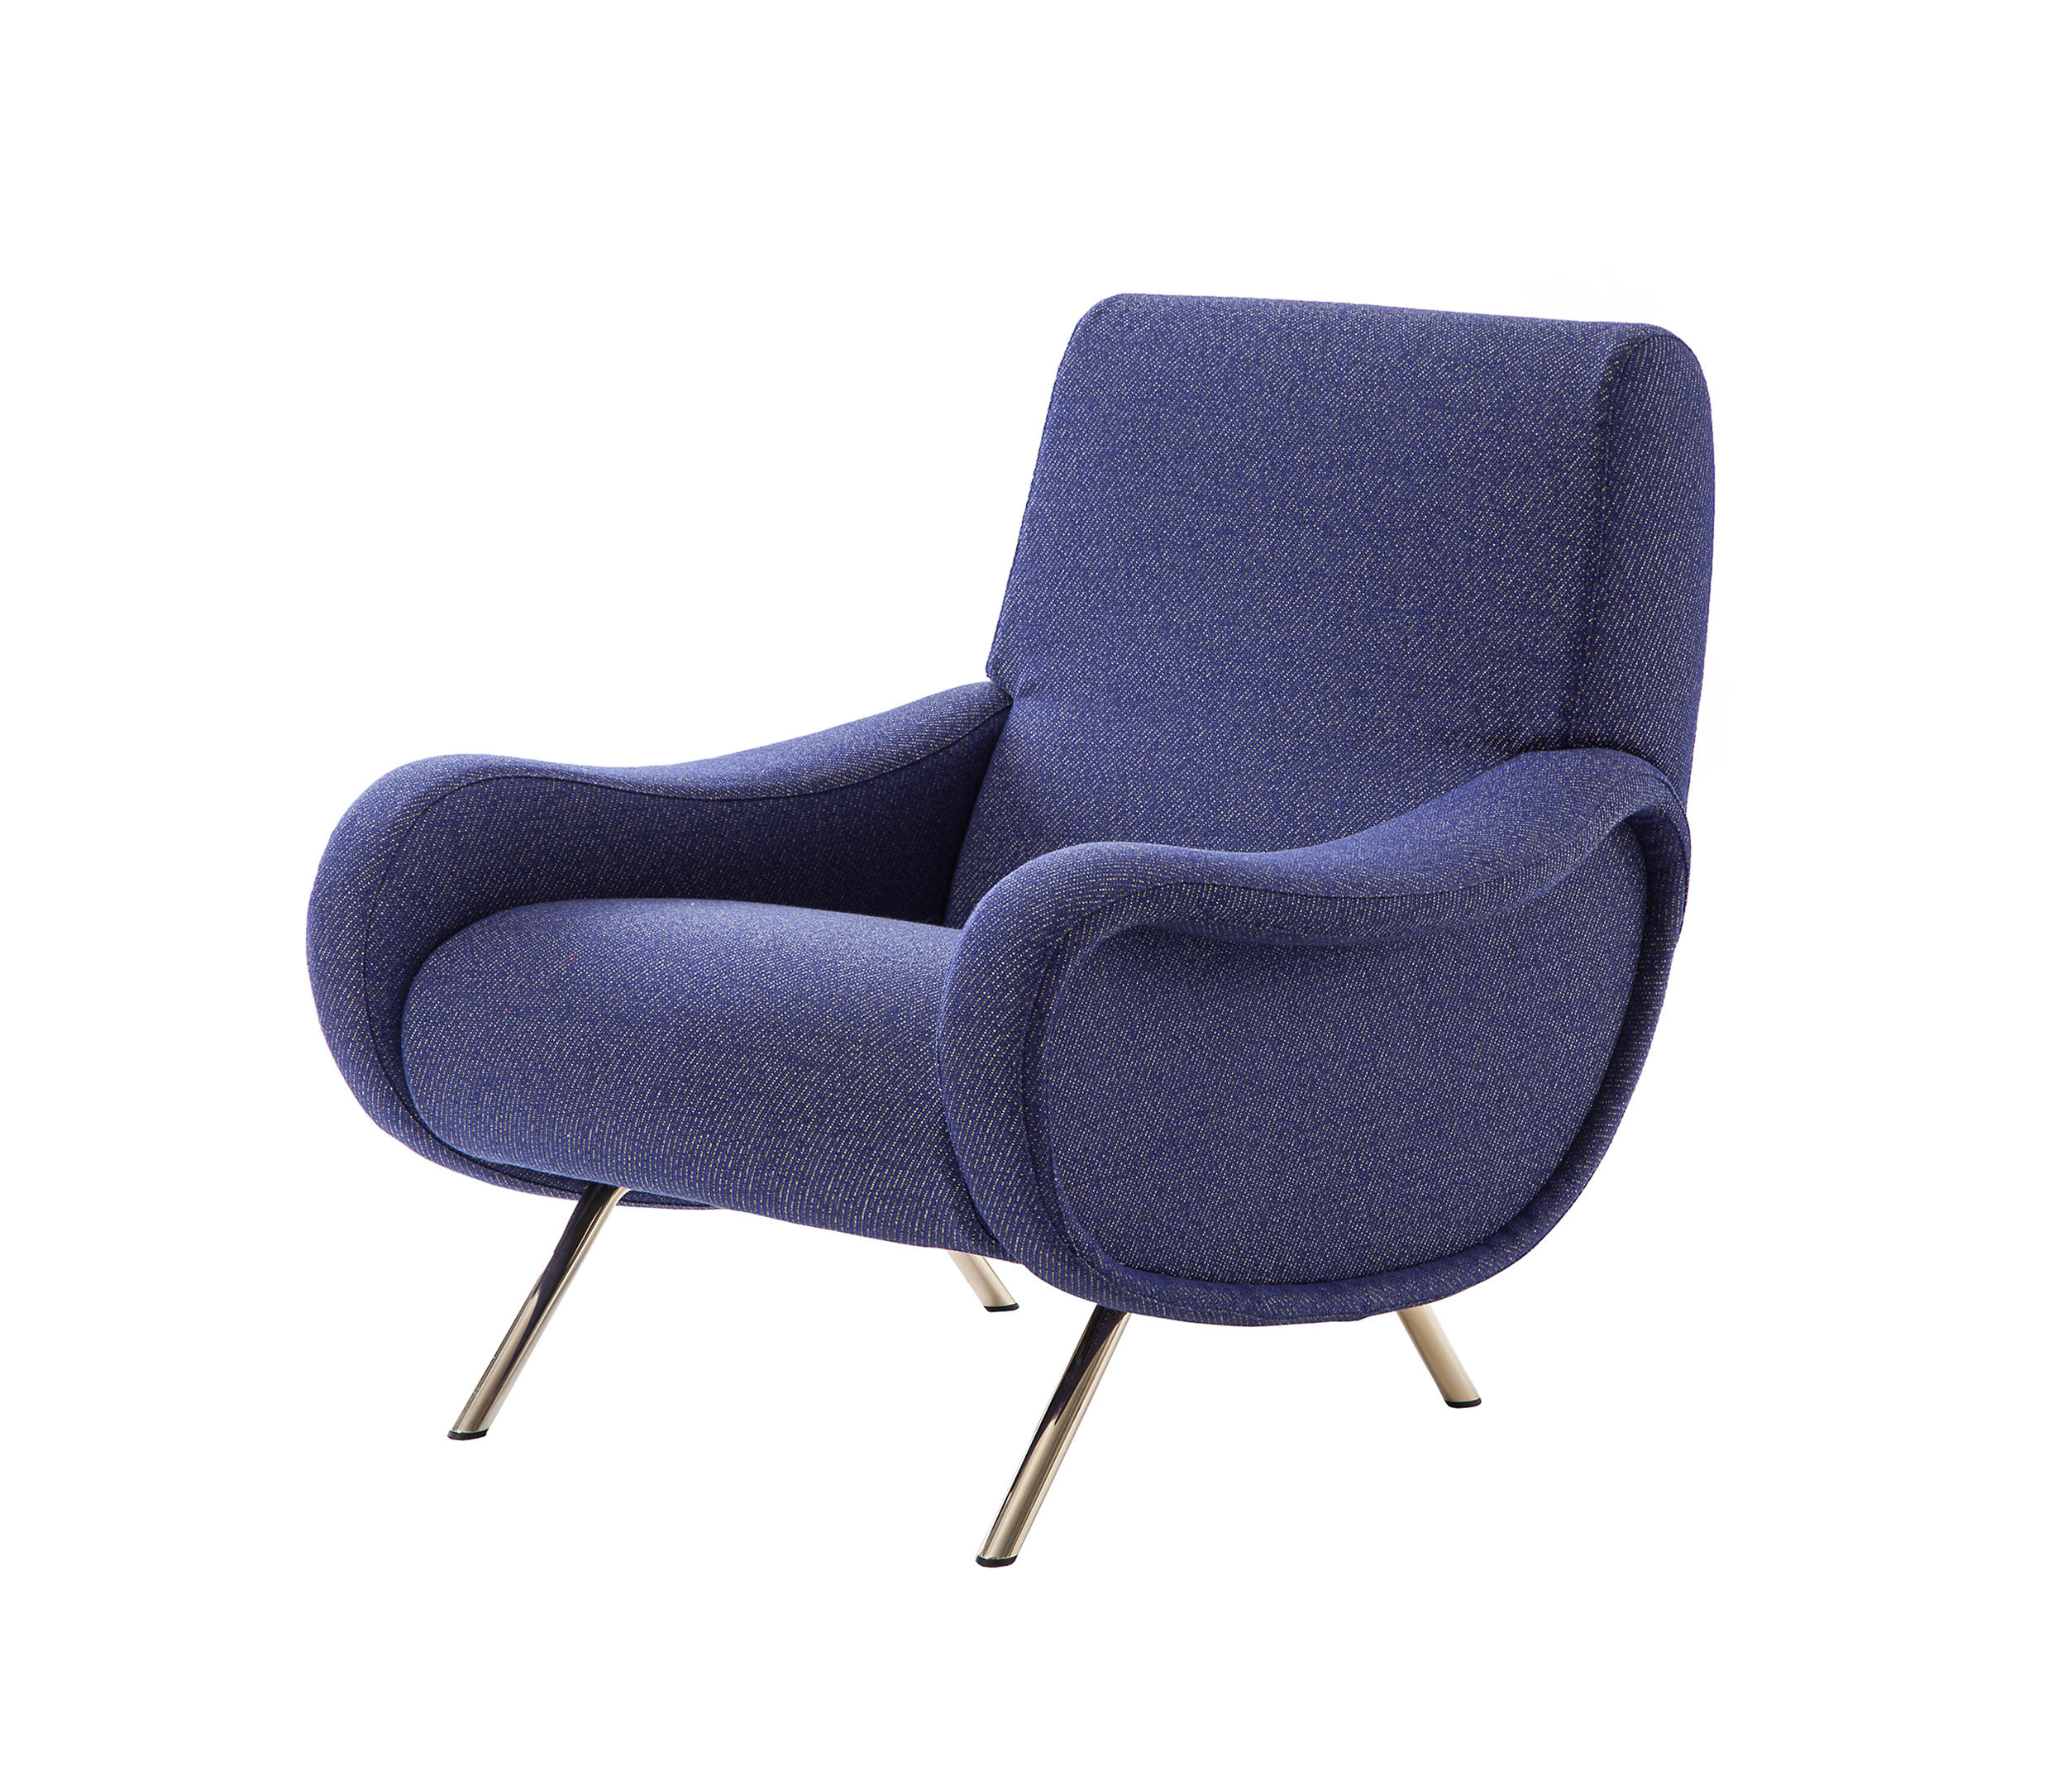 720 LADY Lounge chairs from Cassina